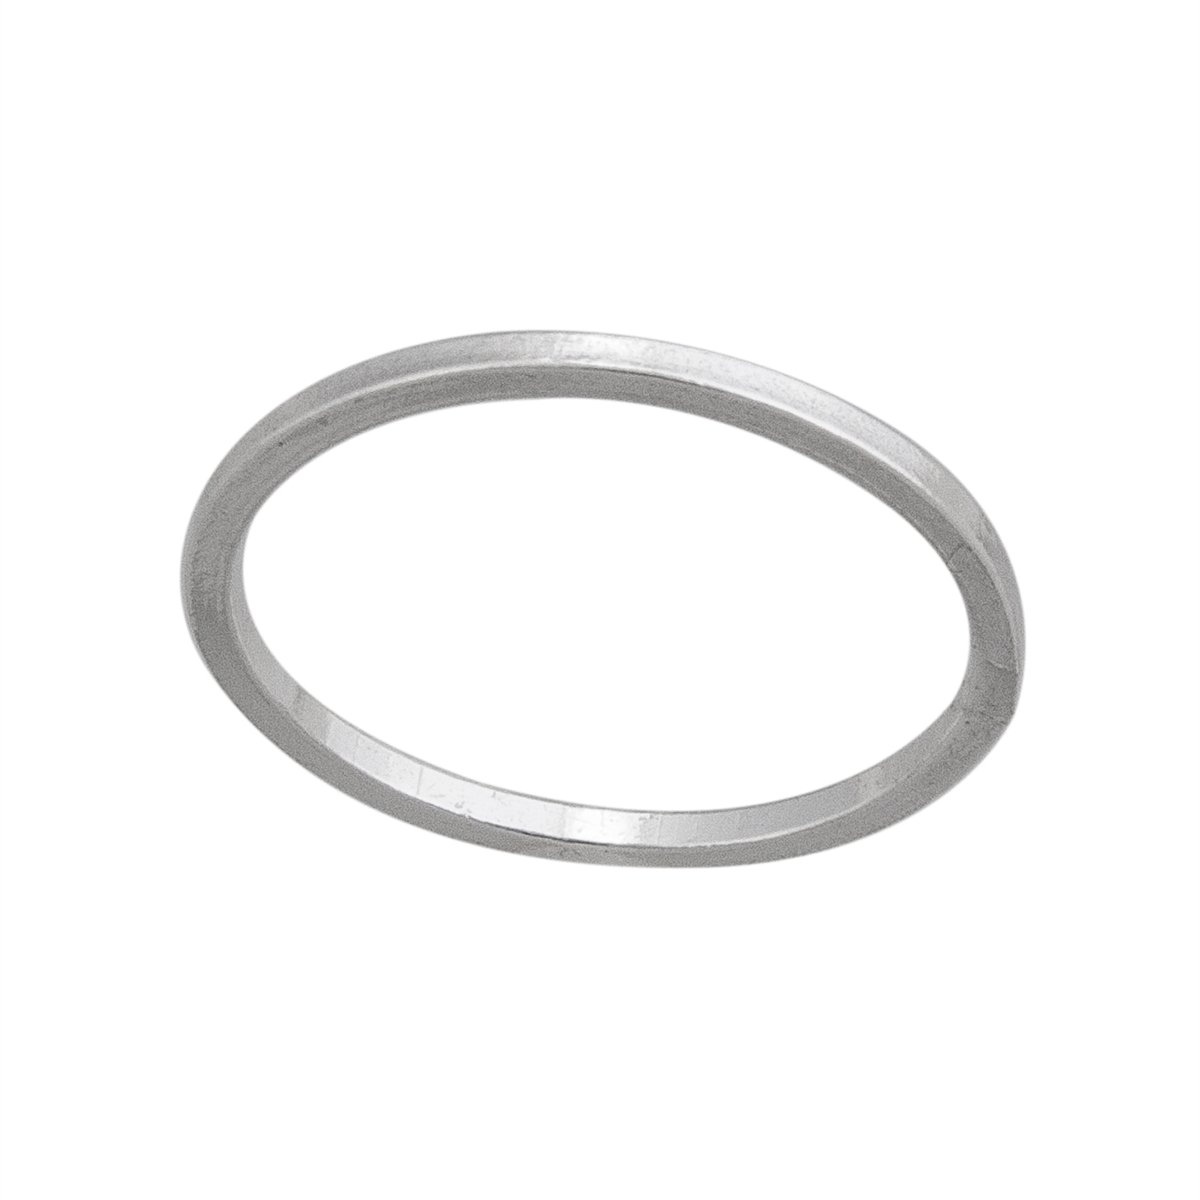 sterling-silver-eternity-ring - 1 - Charles Albert Inc